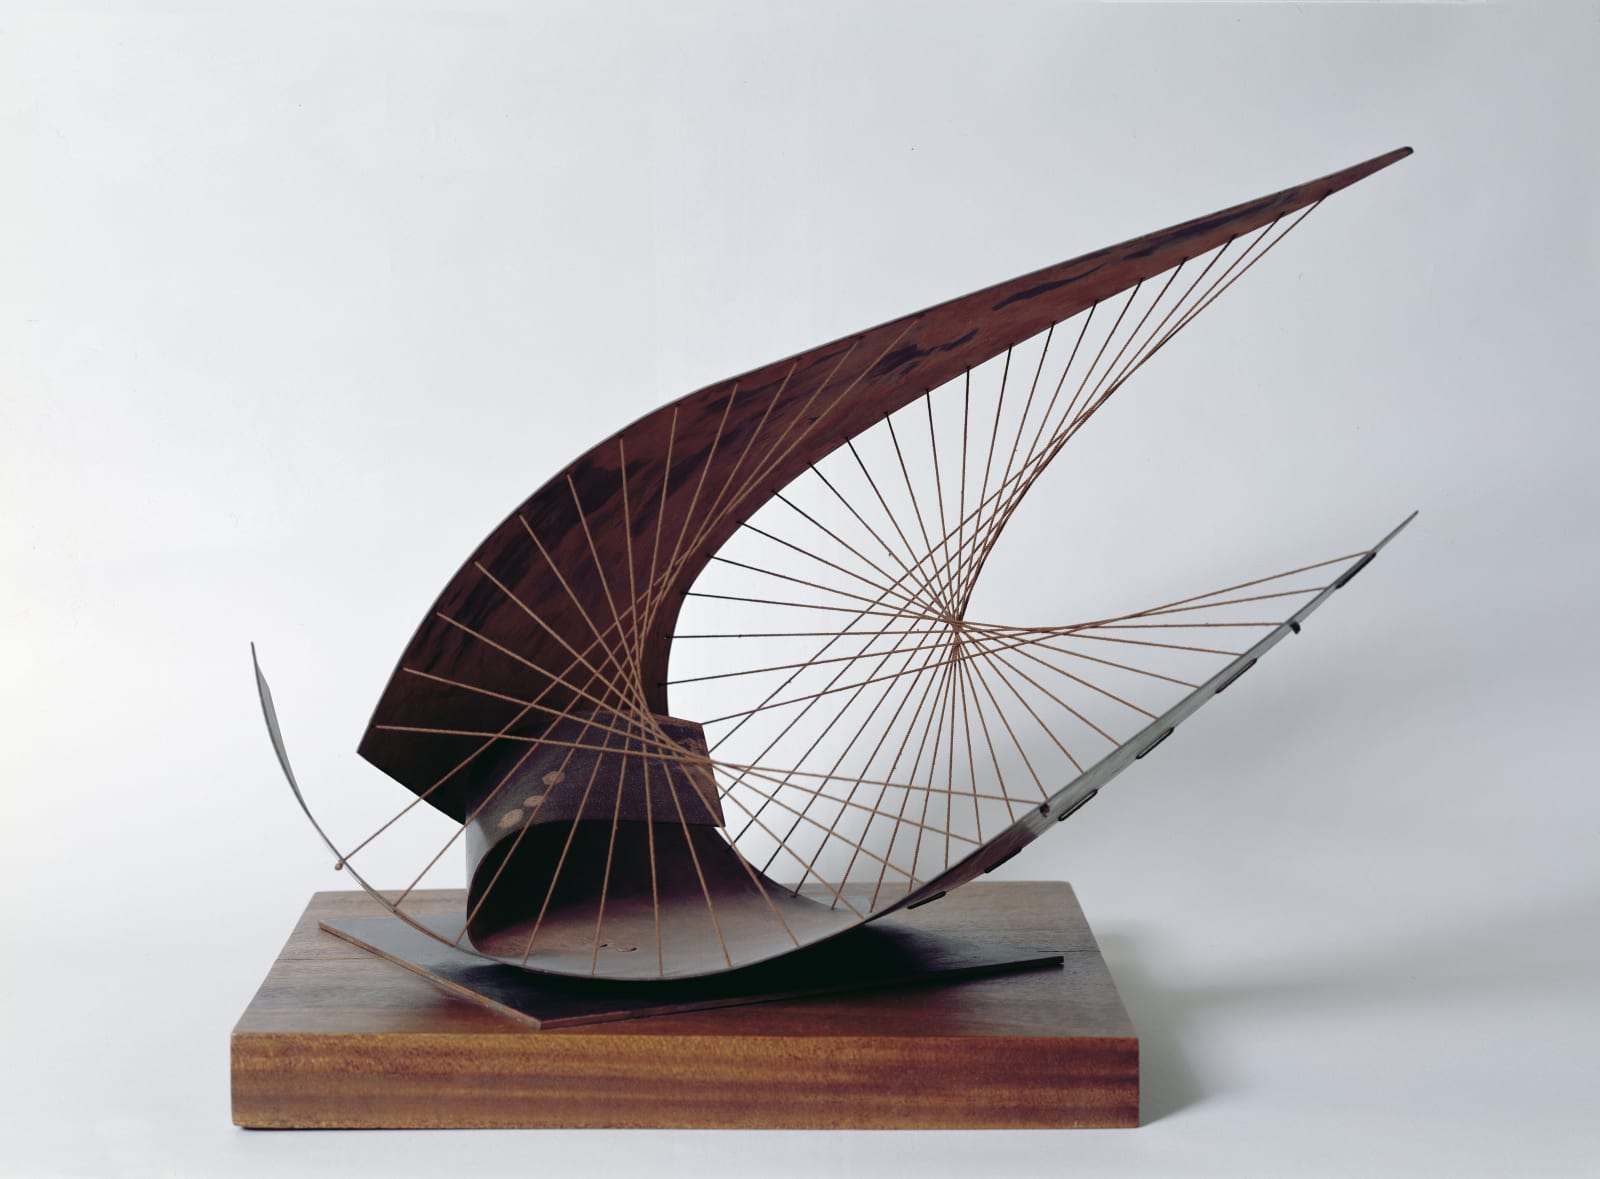 Dame Barbara HEPWORTH (1903 – 1975) Stringed Figure (Curlew) Version I, 1956 Brass and cotton string on a wooden base 16 ½ x 19 ¼ x 11 3/8 inches / 42 x 49 x 29 cm Cast in an edition of 1 of 9, BH 225A